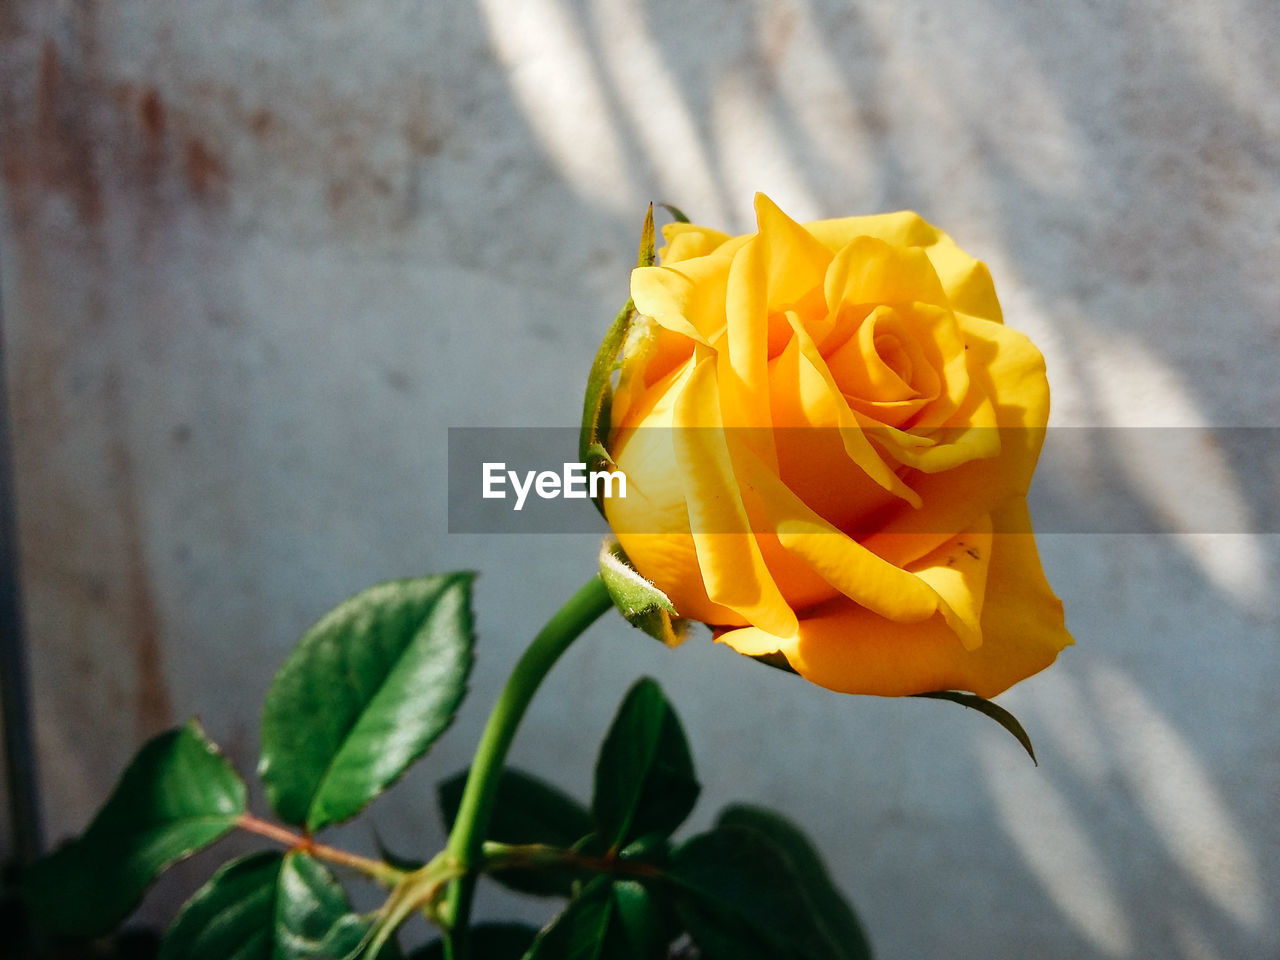 flower, flowering plant, plant, beauty in nature, rose, petal, freshness, flower head, yellow, inflorescence, vulnerability, close-up, rose - flower, fragility, nature, plant part, leaf, growth, no people, outdoors